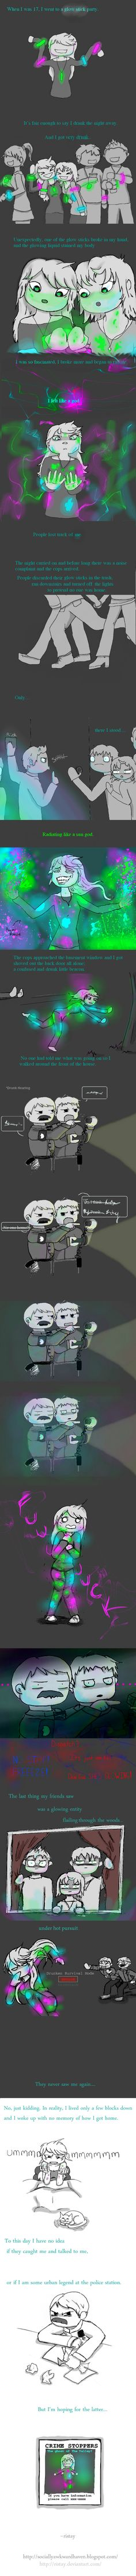 2 Spooky: the Glowstick Ghost // funny pictures - funny photos - funny images - funny pics - funny quotes - Tumblr Funny, Funny Memes, Jokes, Videos Funny, Funny Cute, Hilarious, Online Comics, Funny Pins, Funny Stuff